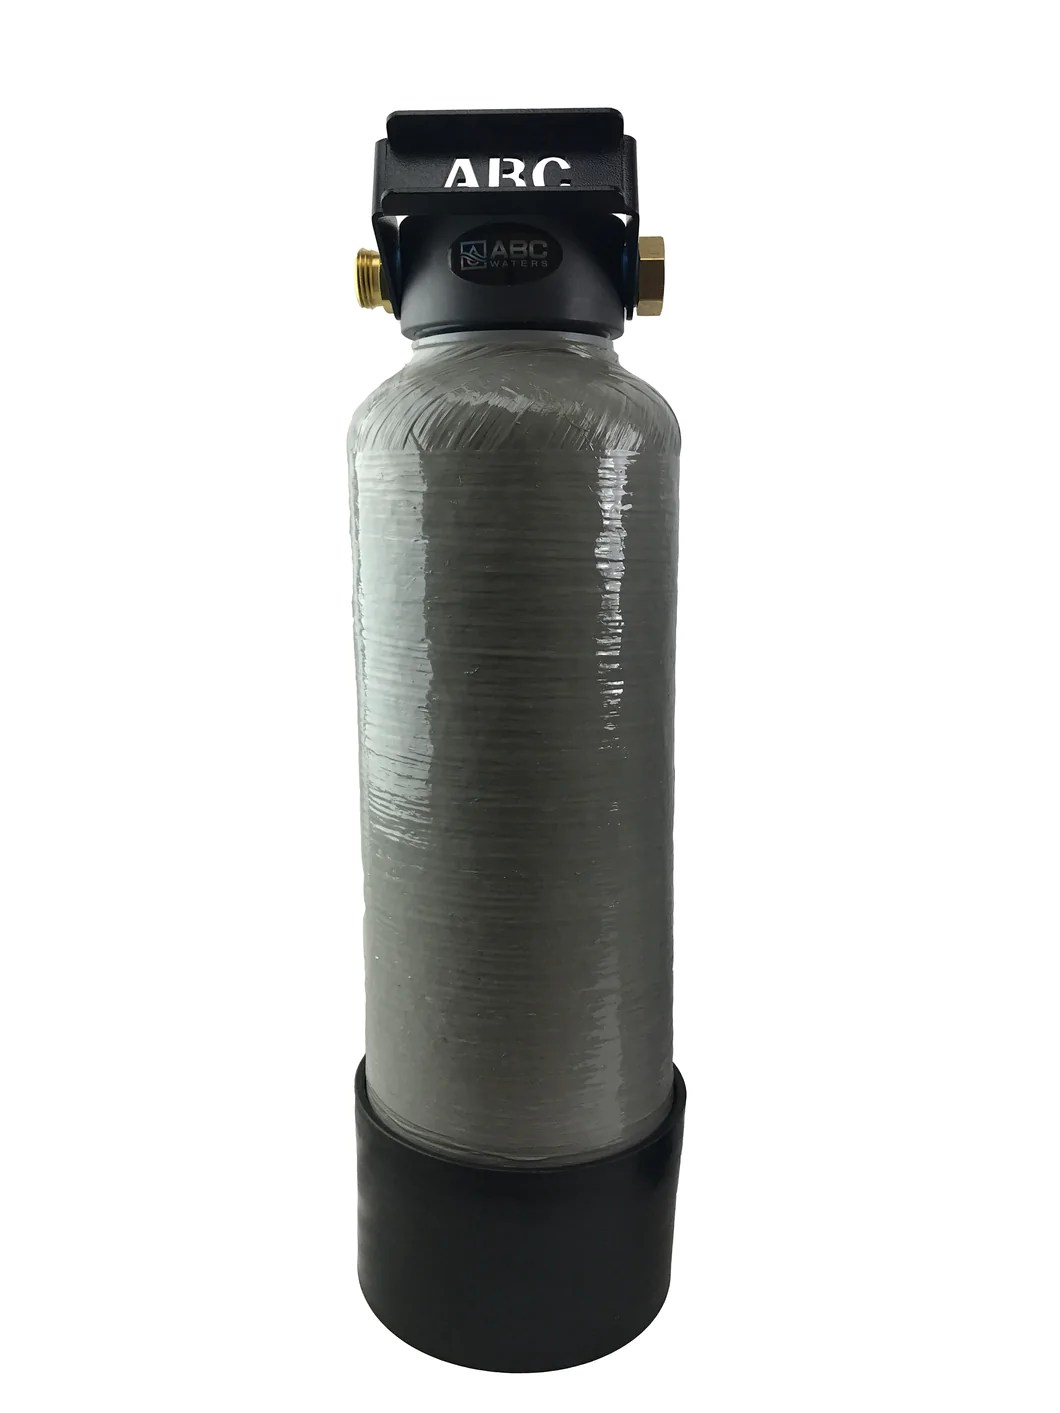 Water Softener Price Abcwaters Portable Water Softener 8 000 Grain Capacity 6